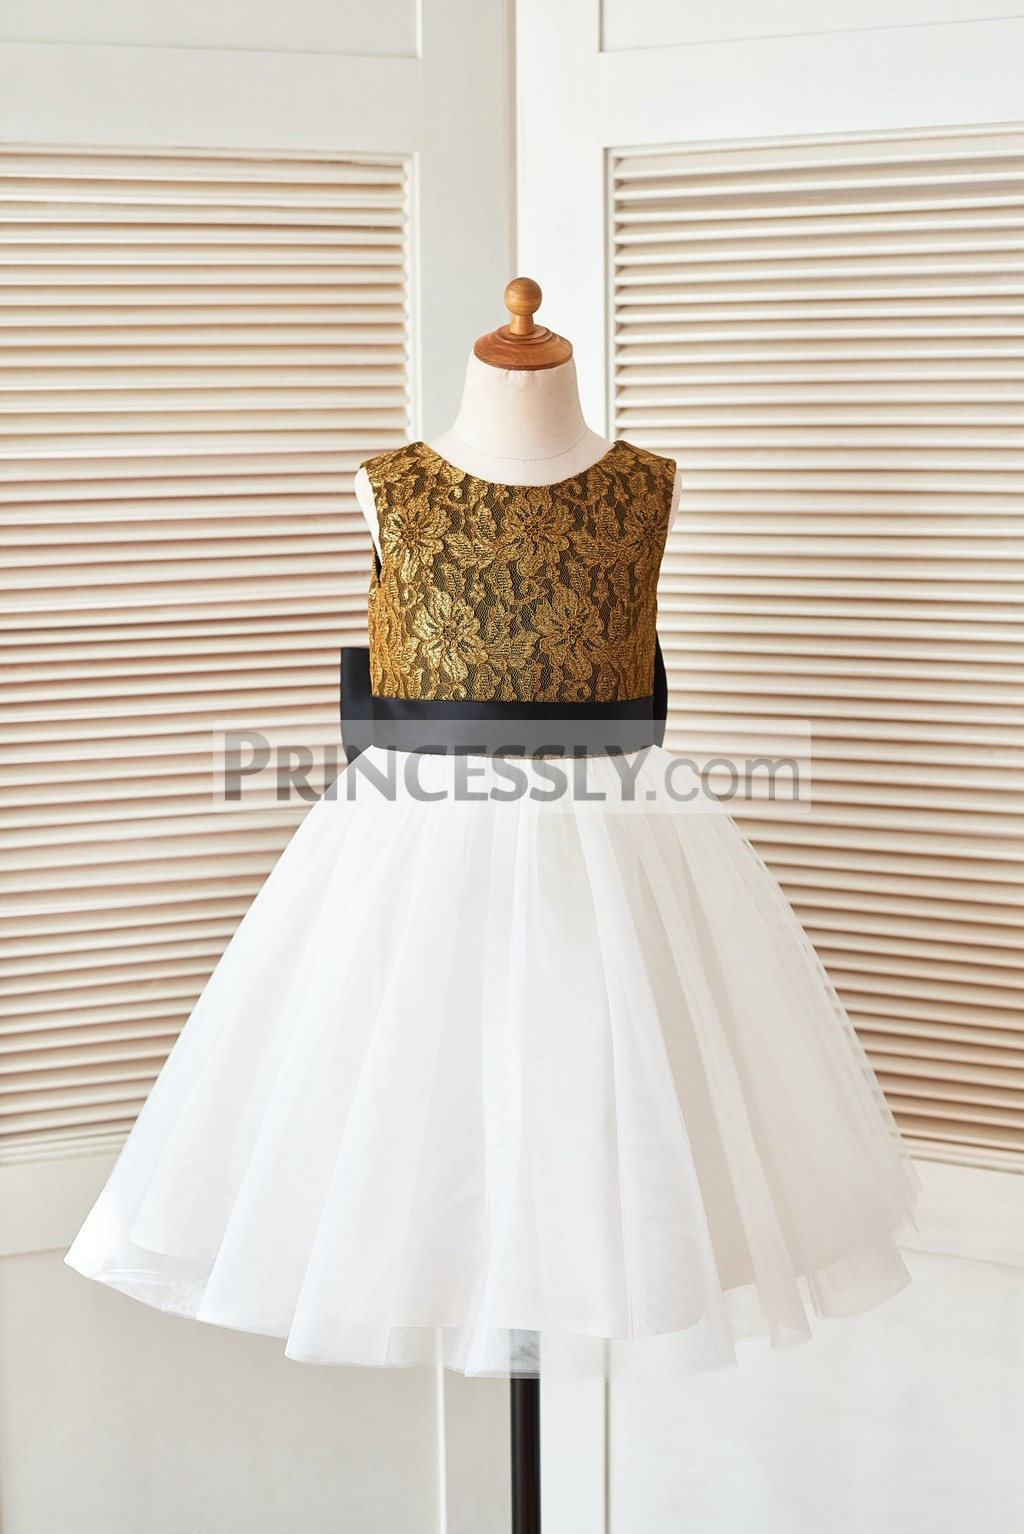 Gold Lace Ivory Tulle Flower Girl Dress with Black Belt and Big Bow